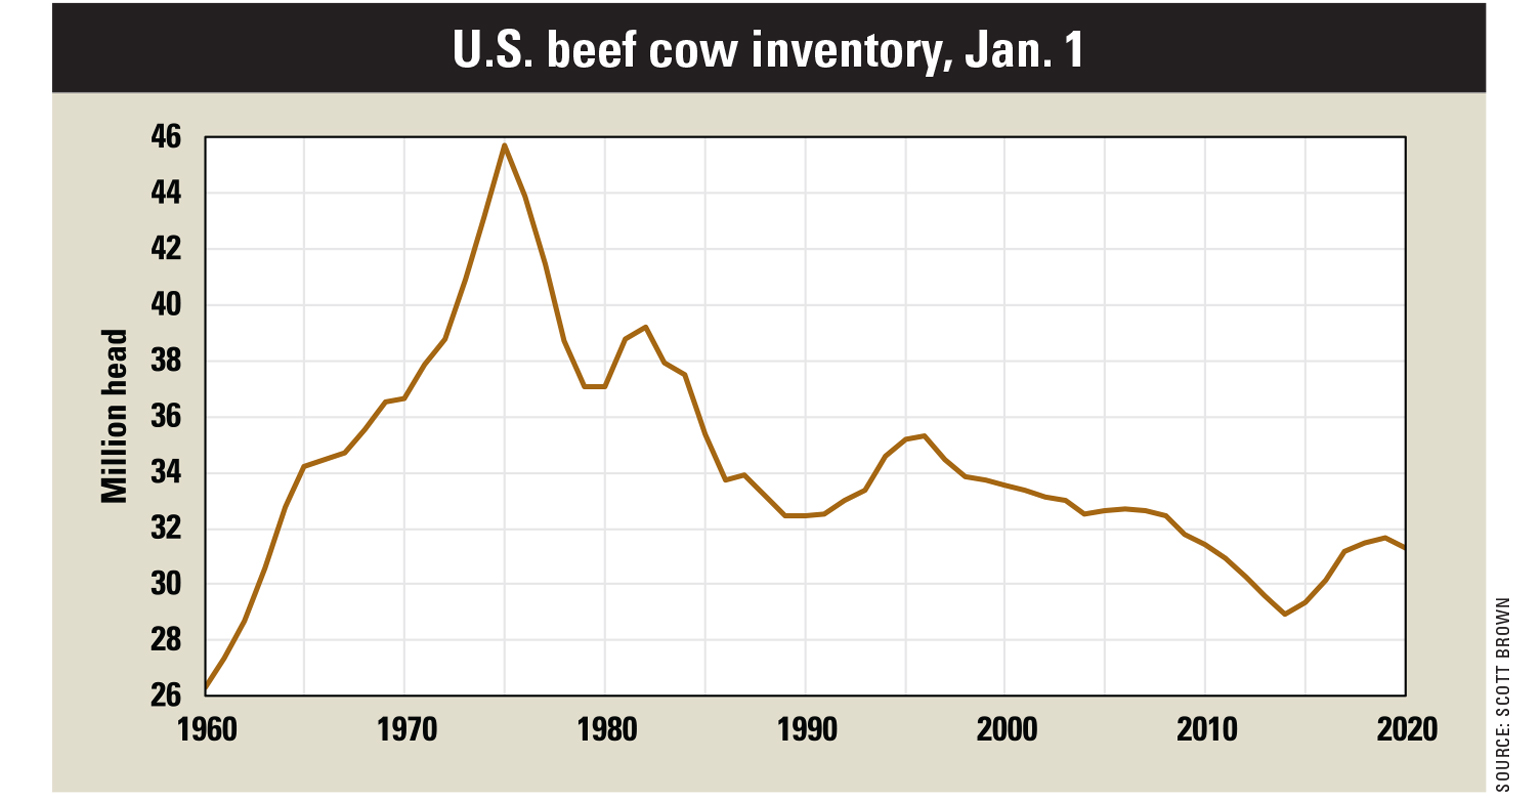 U.S. beef cow inventory chart